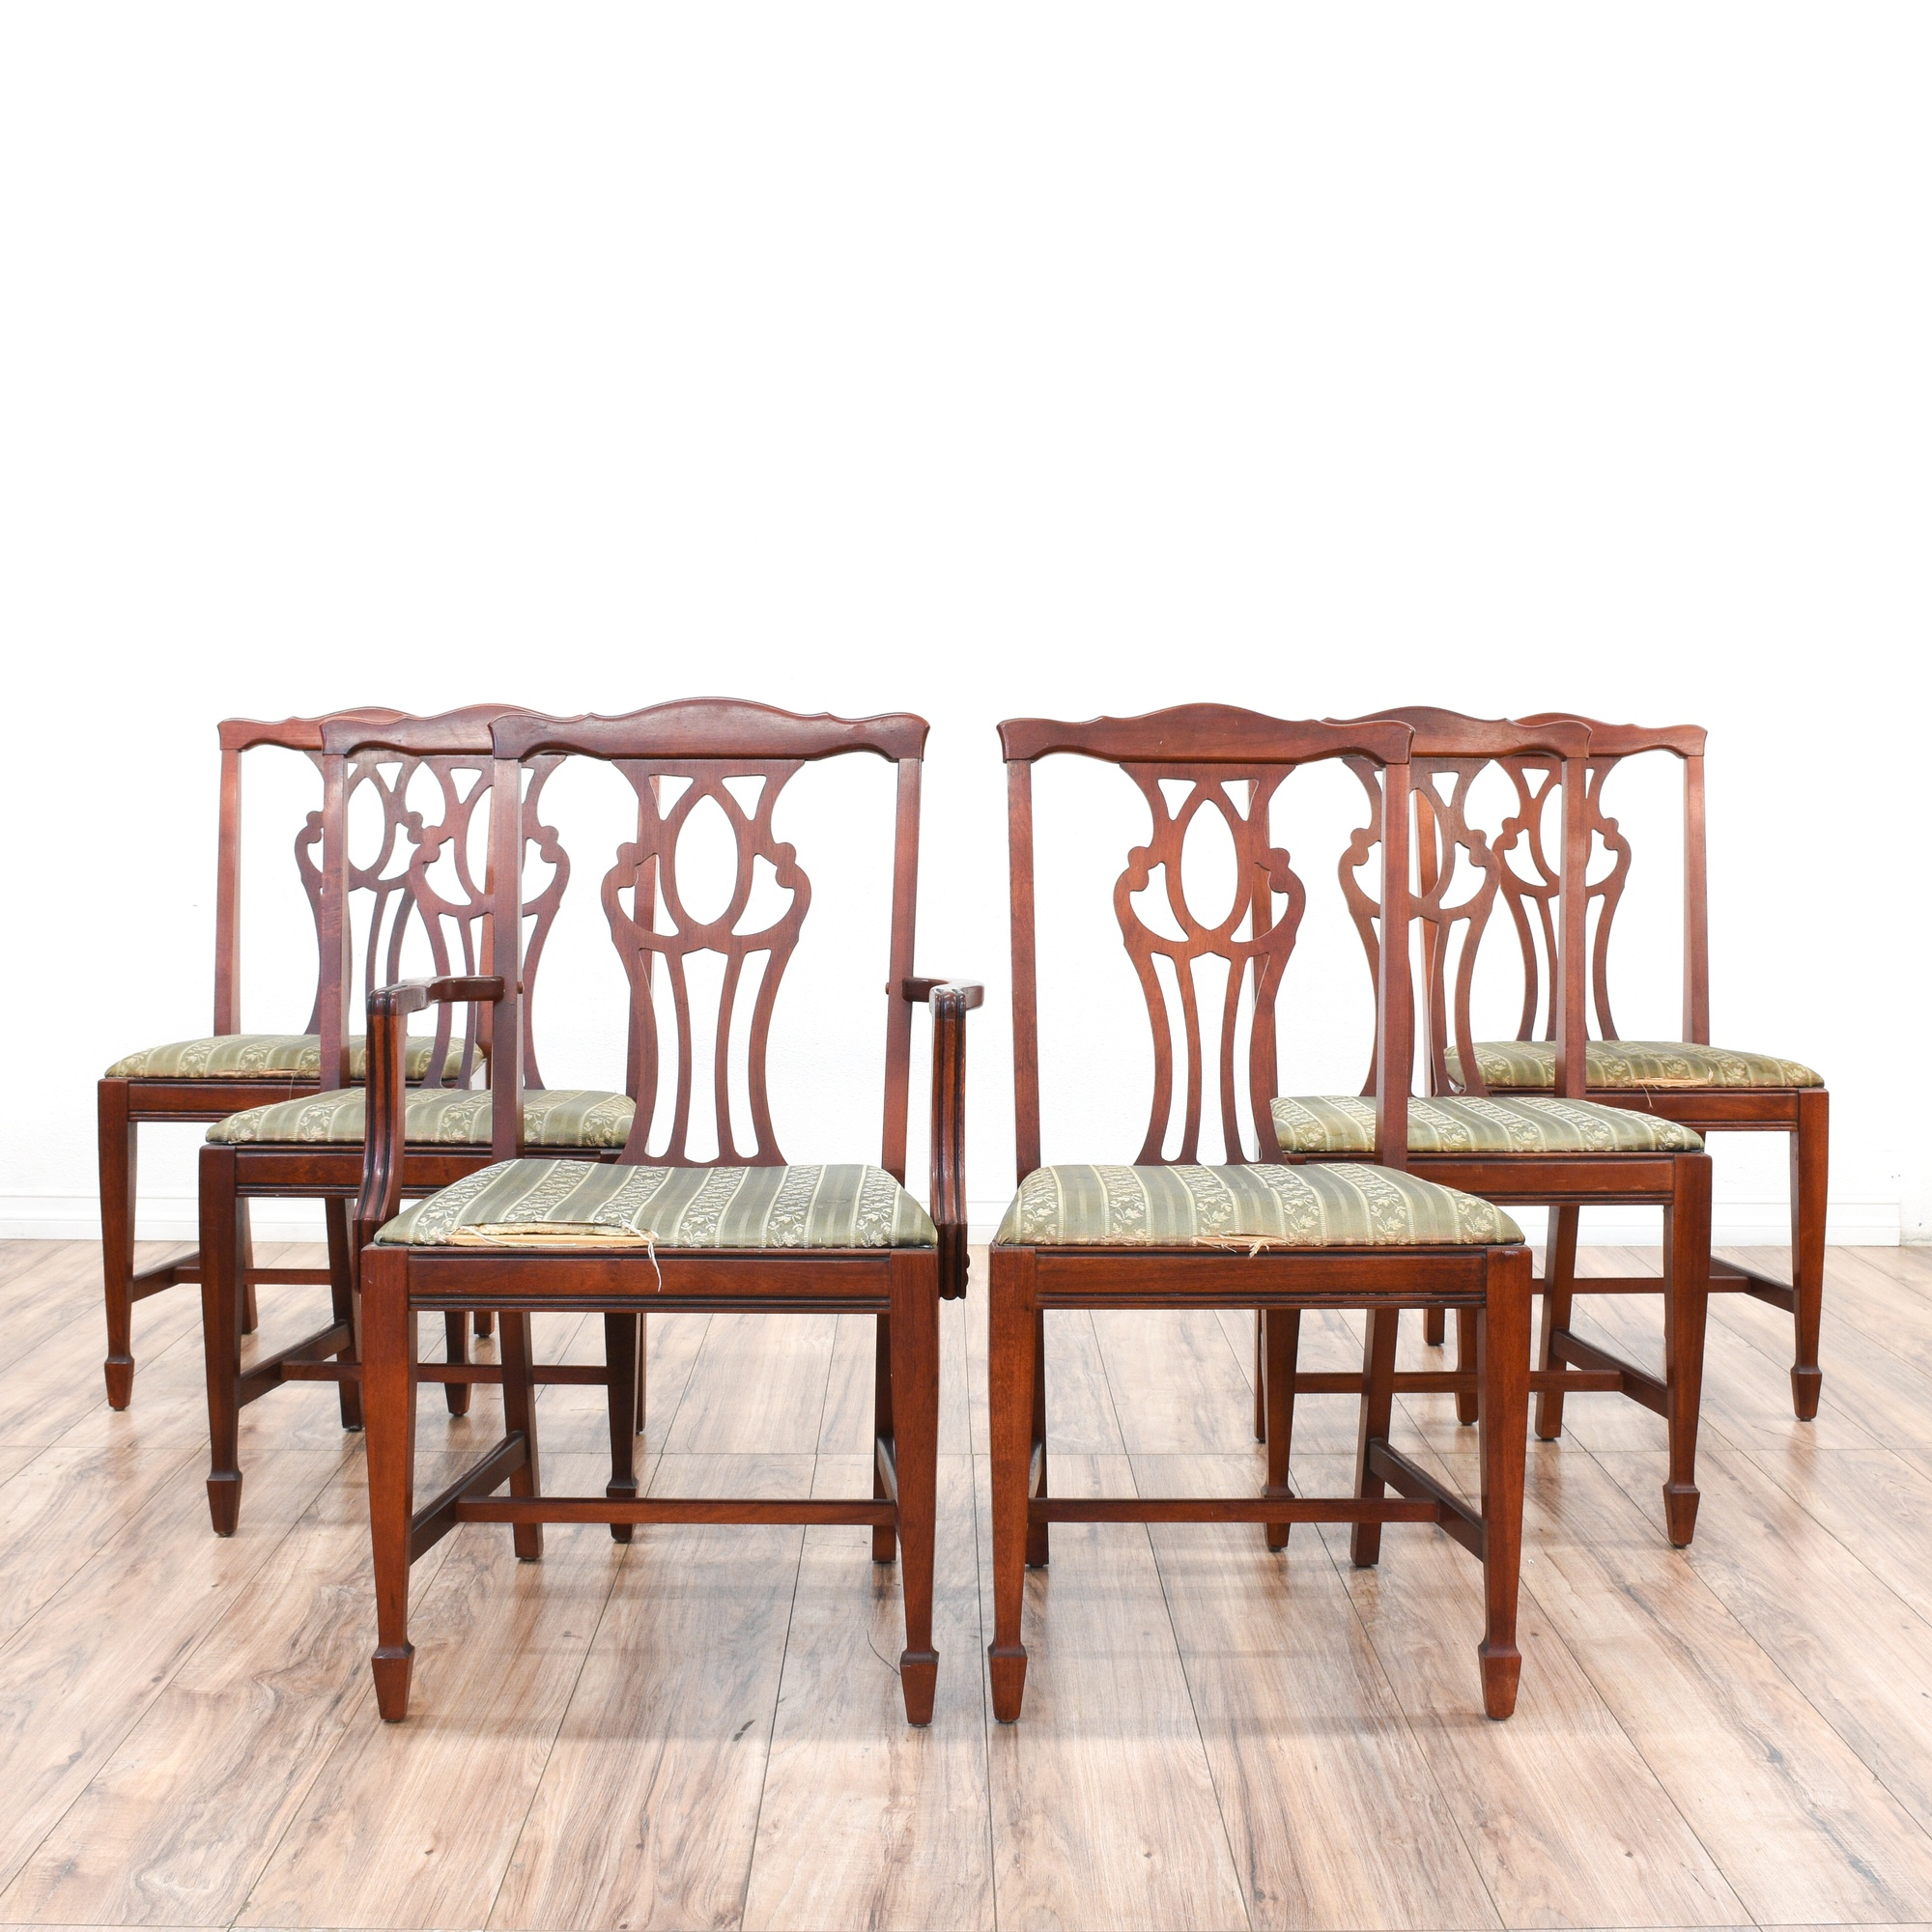 Set of 6 Duncan Phyfe Sheraton Style Dining Chairs